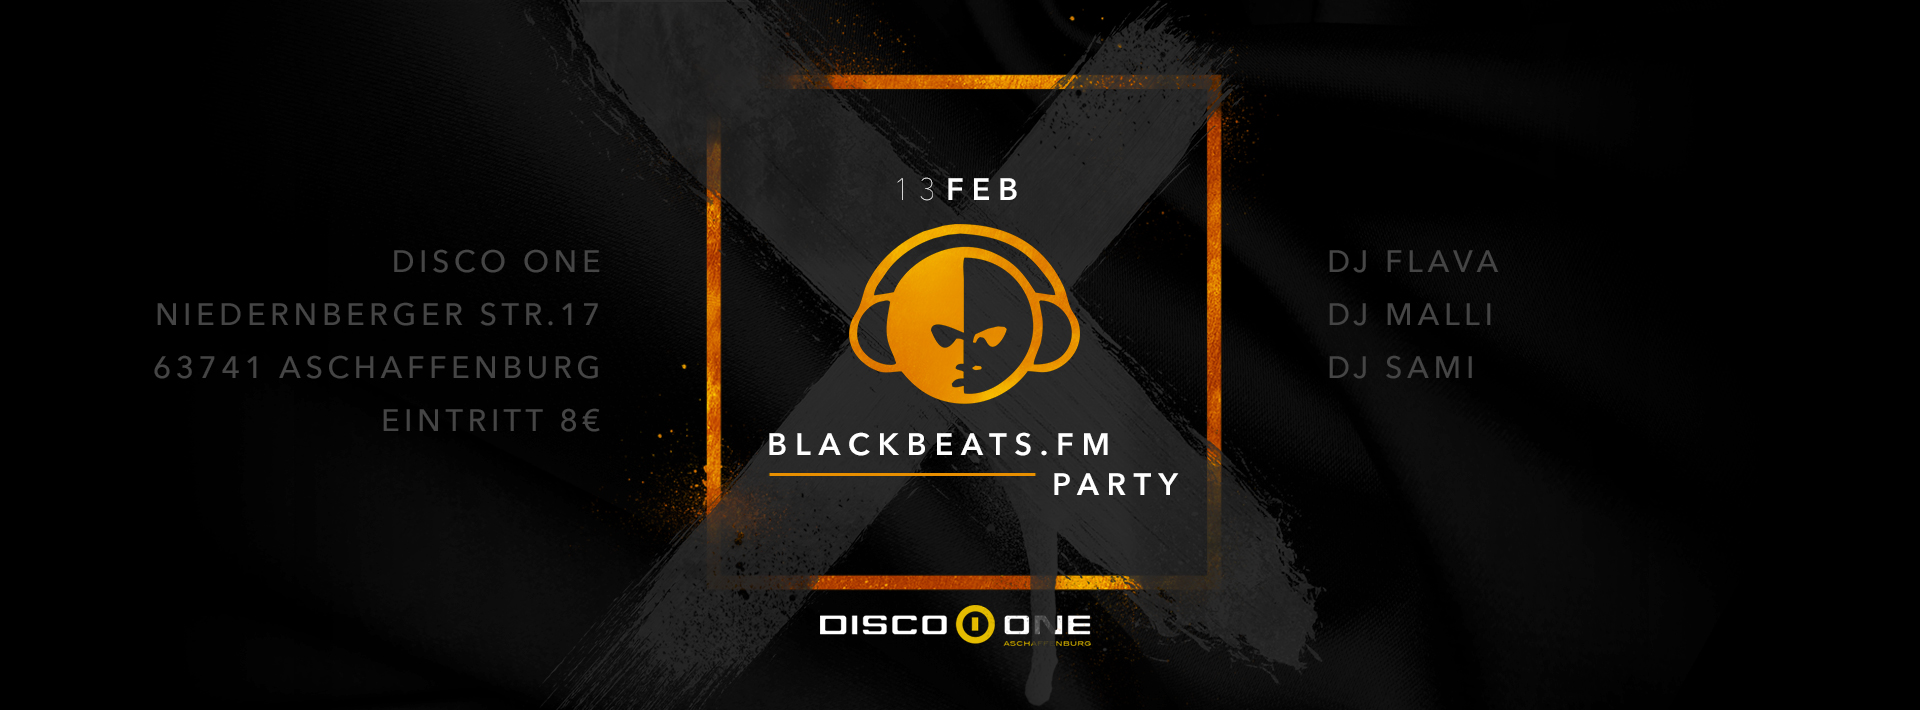 blackbeats.fm | Disco One Aschaffenburg